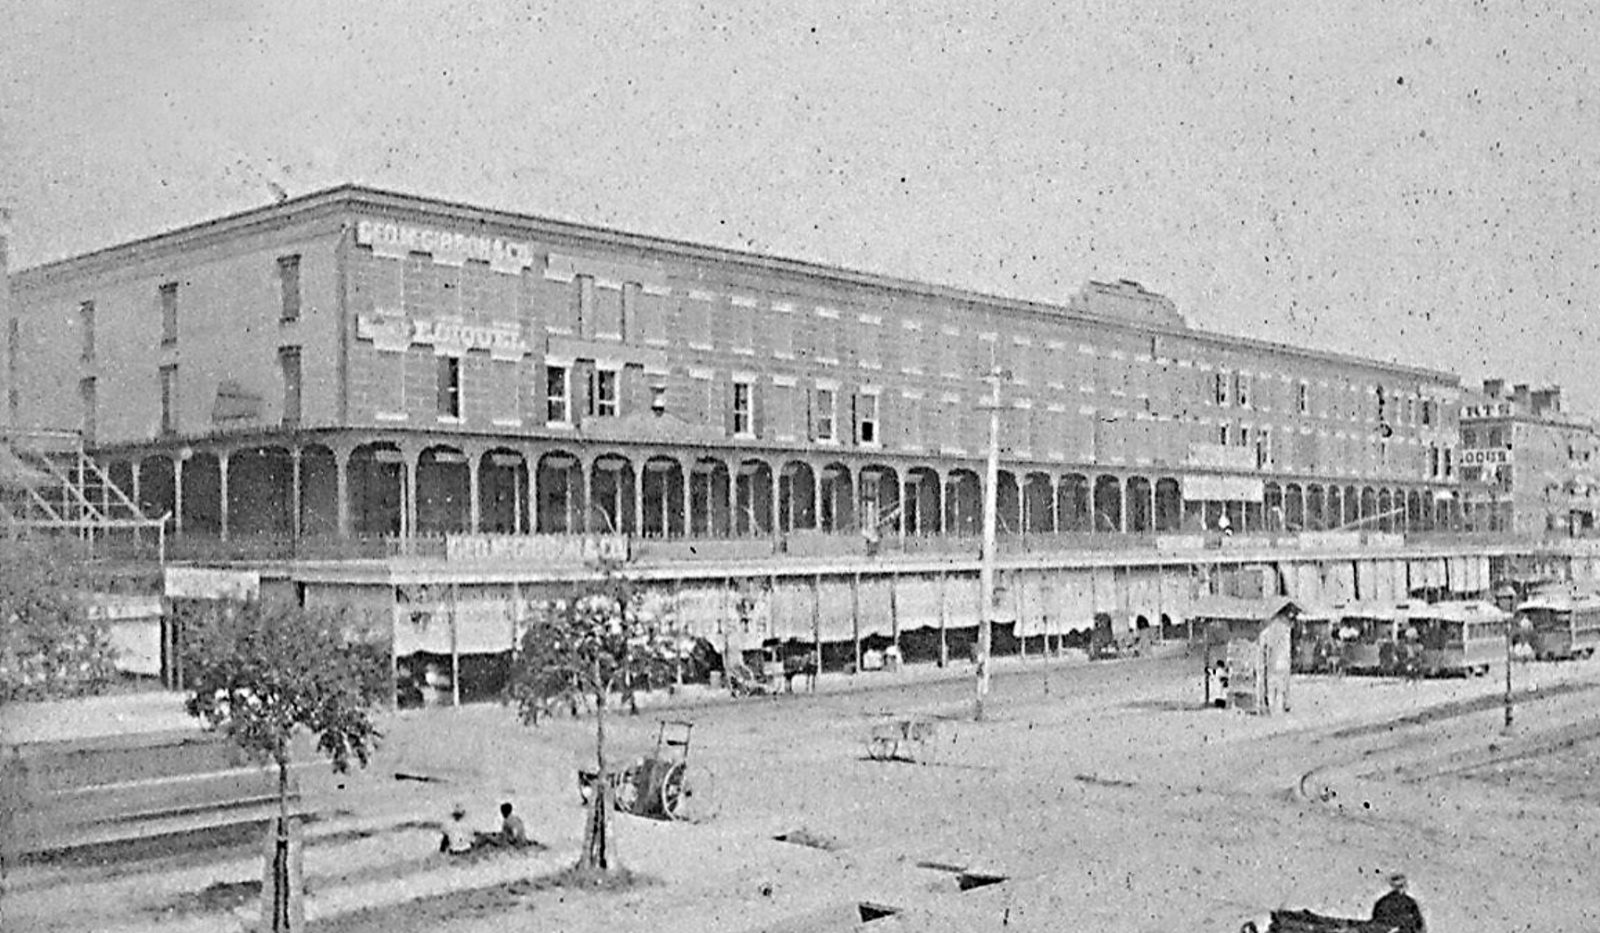 Touro Row, the Canal Street catalyst of the 1850s